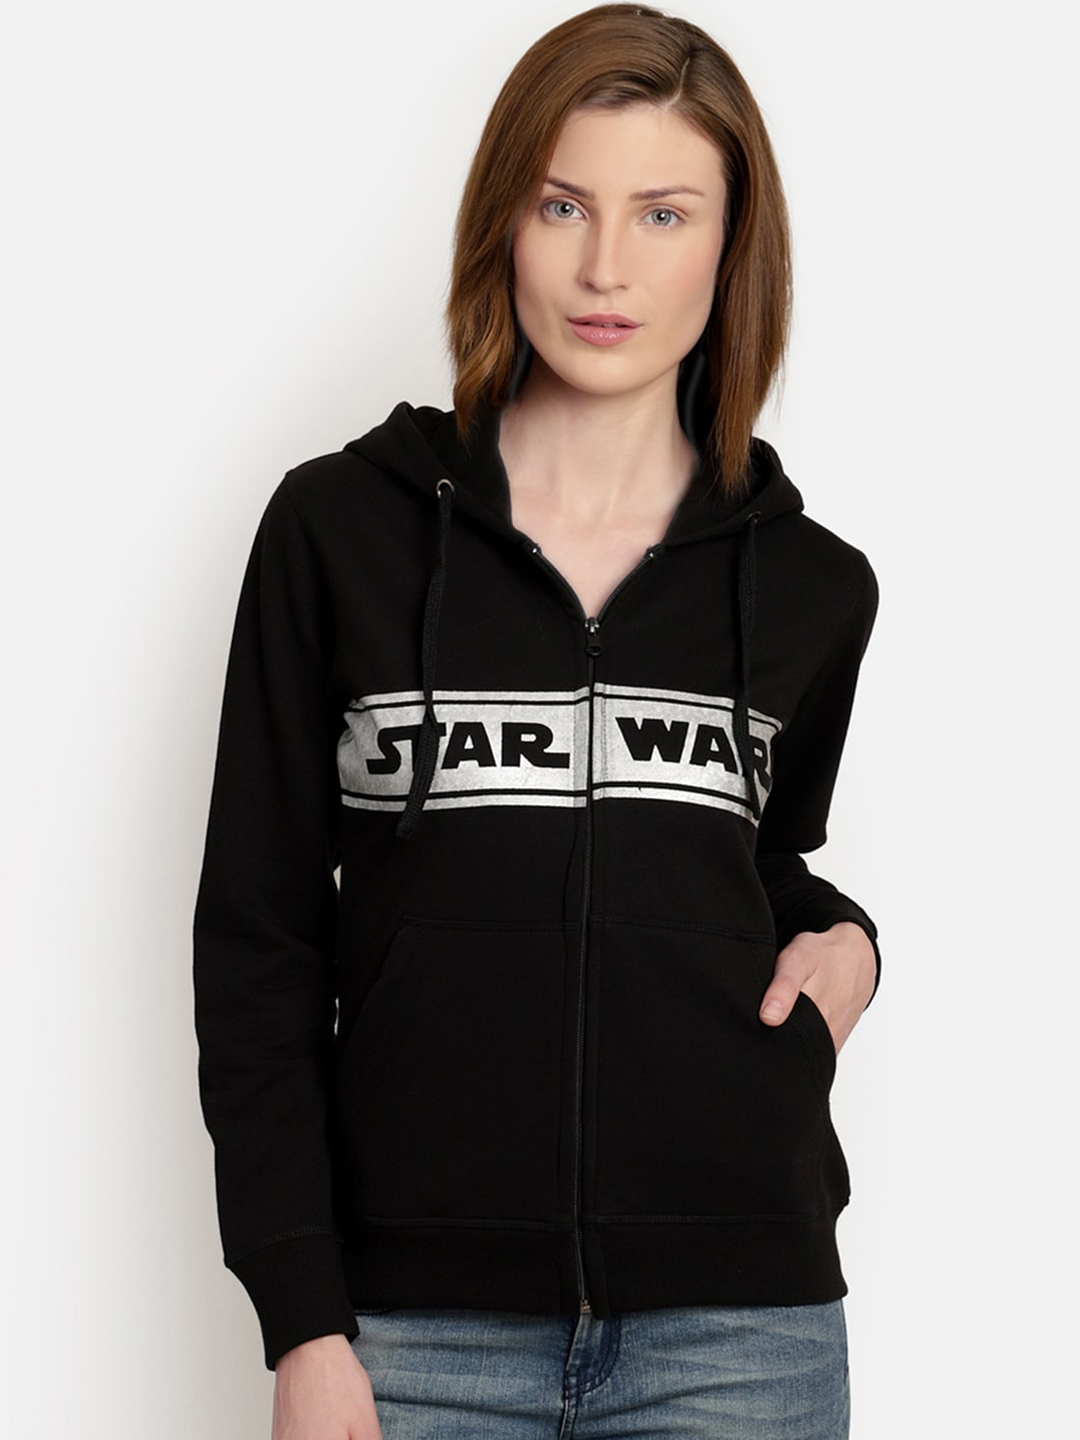 Free Authority Women Black Star Wars Print Hooded Sweatshirt